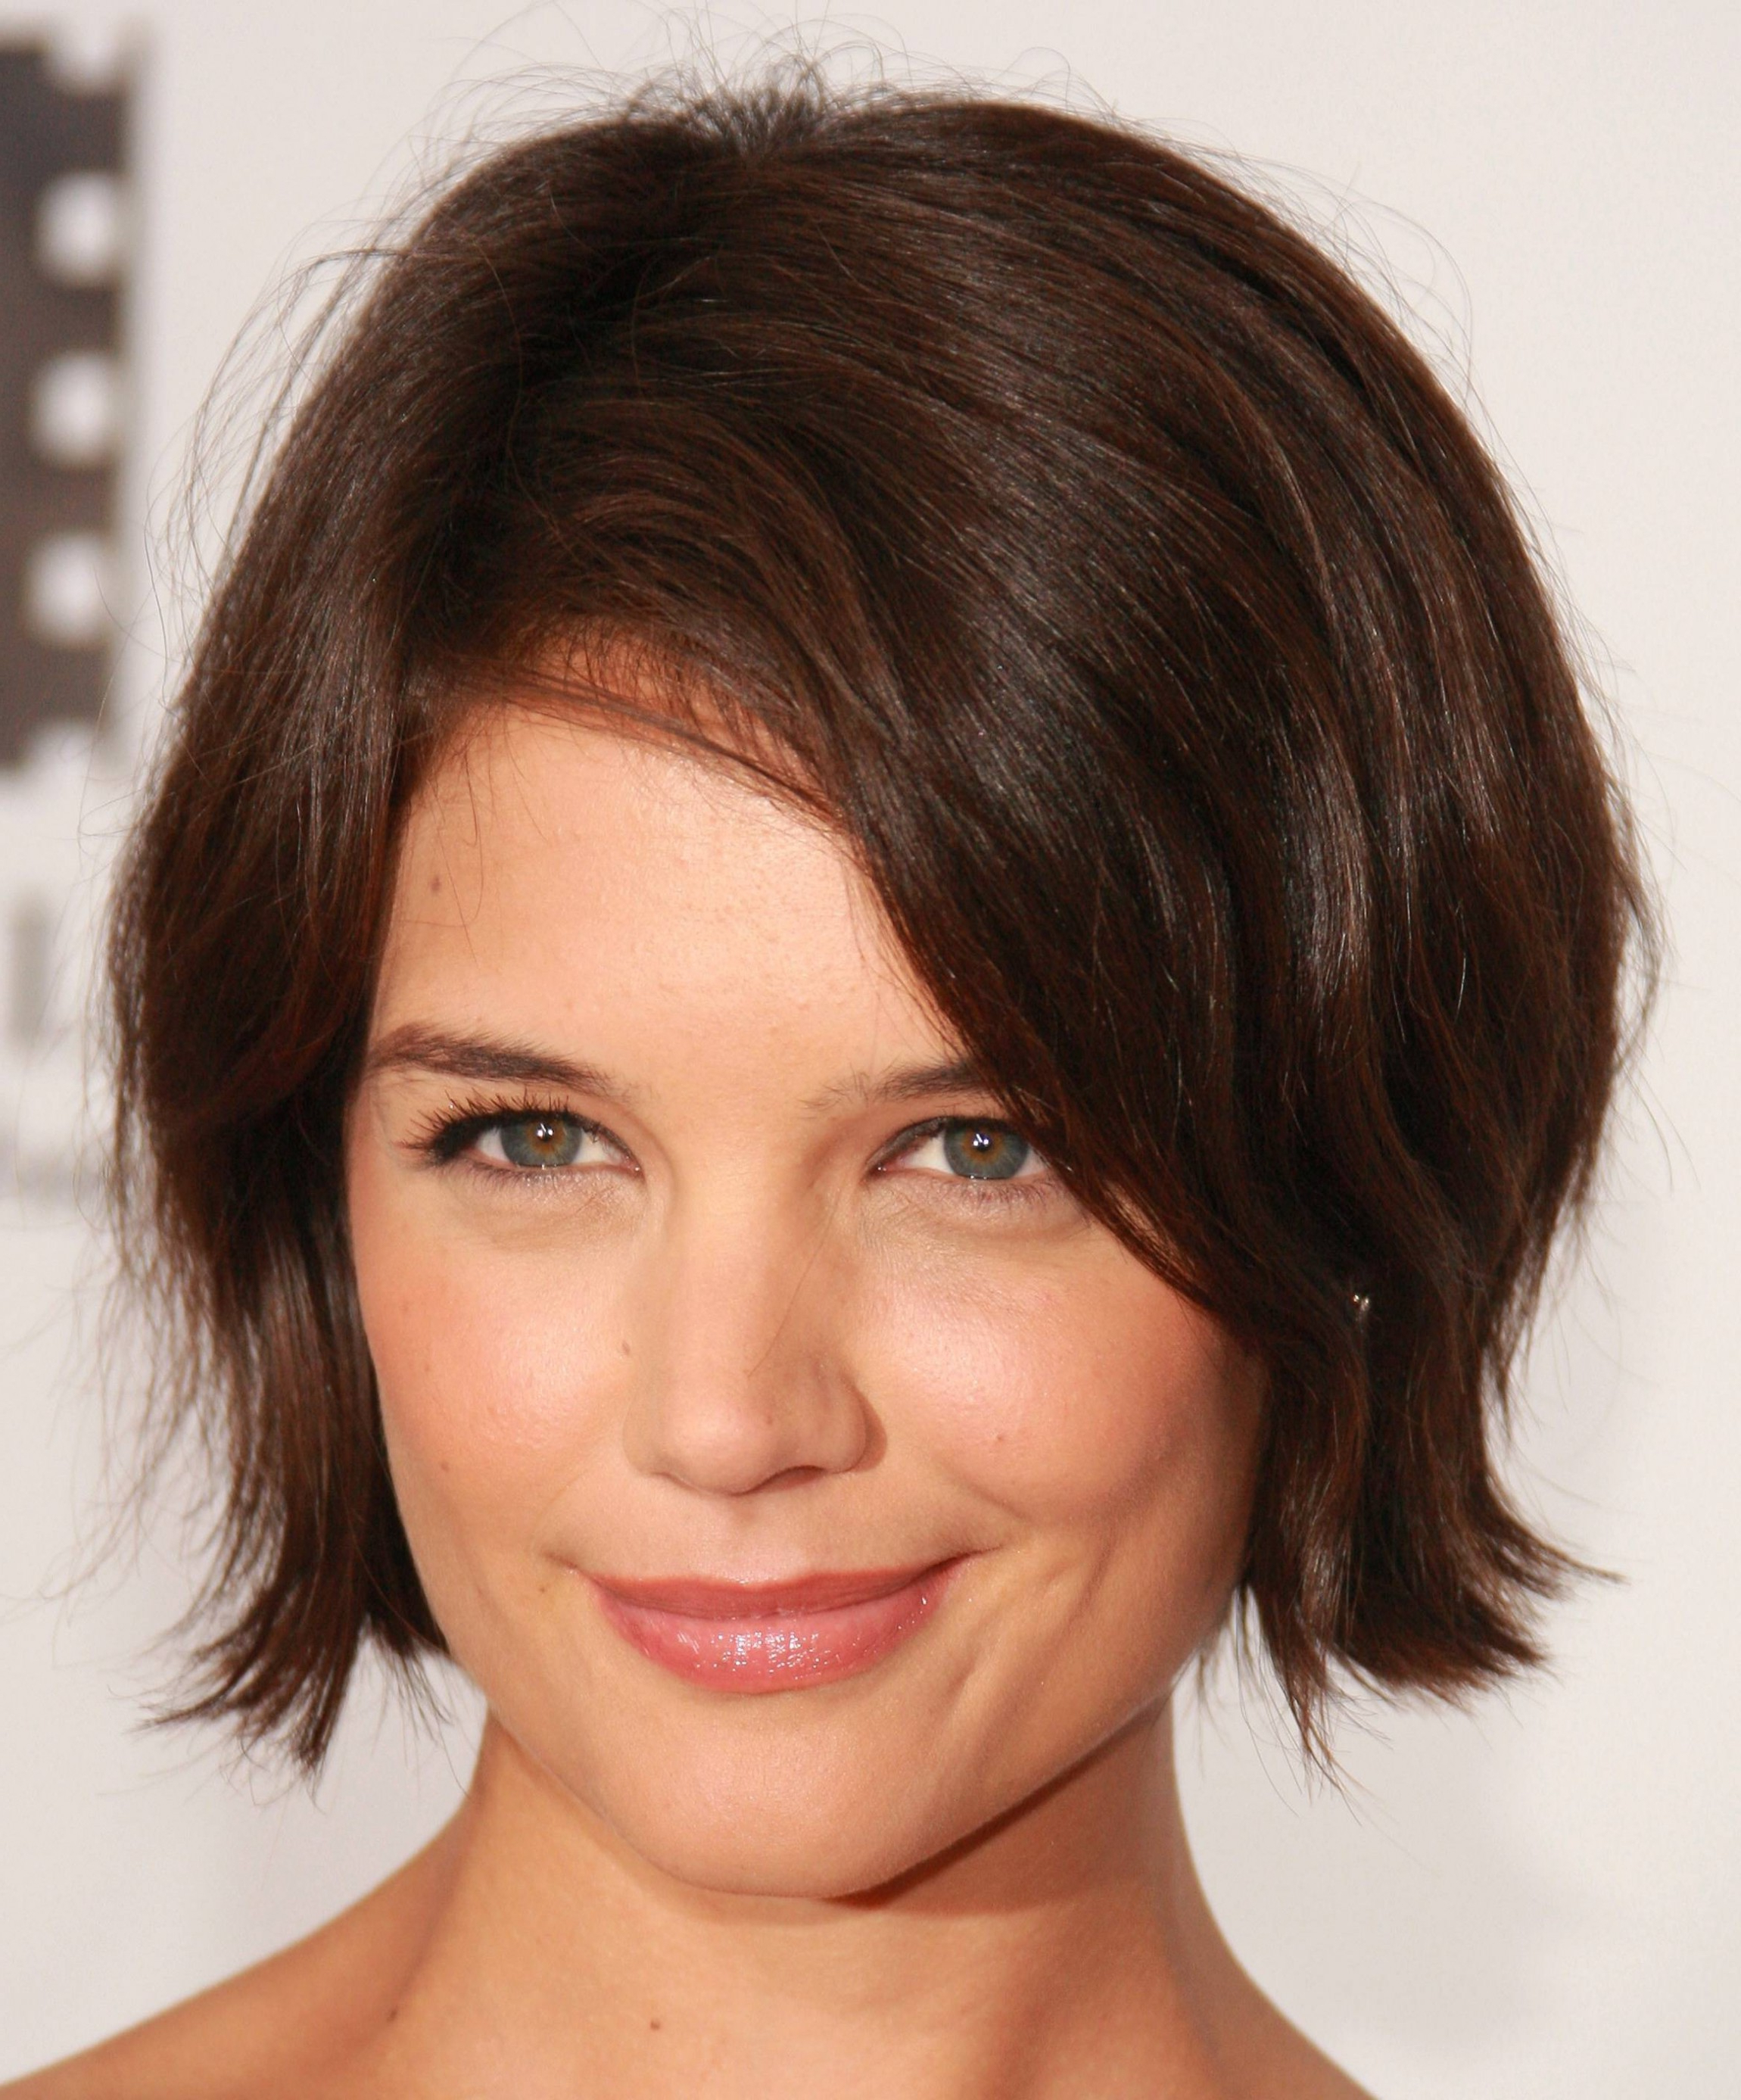 Best Short Hairstyles – Cute Hair Cut Guide For Round Face Shape Pertaining To Short Hairstyles For Thick Hair And Long Face (View 12 of 25)